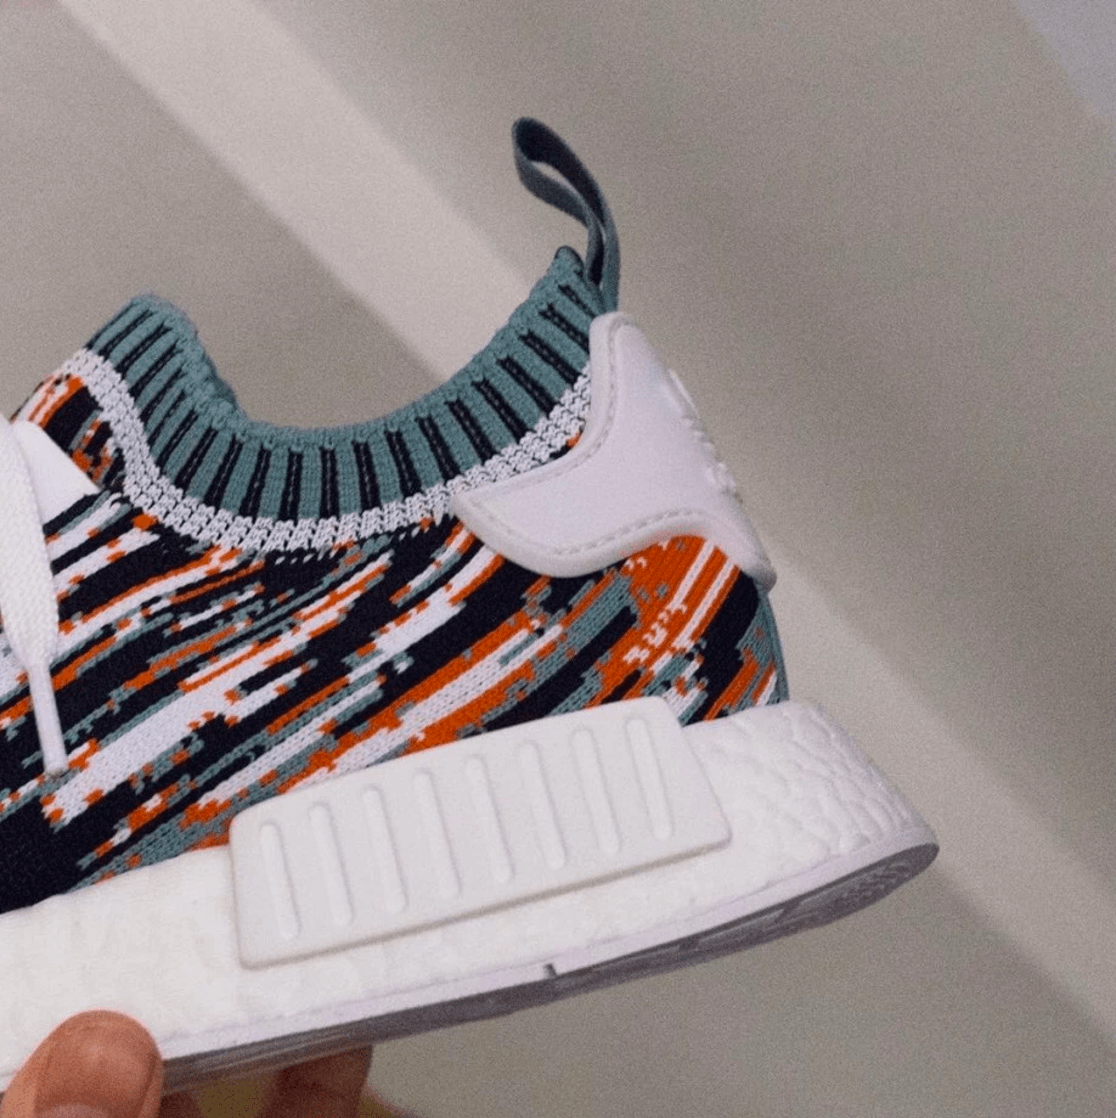 Adidas NMD_Blurred Culture